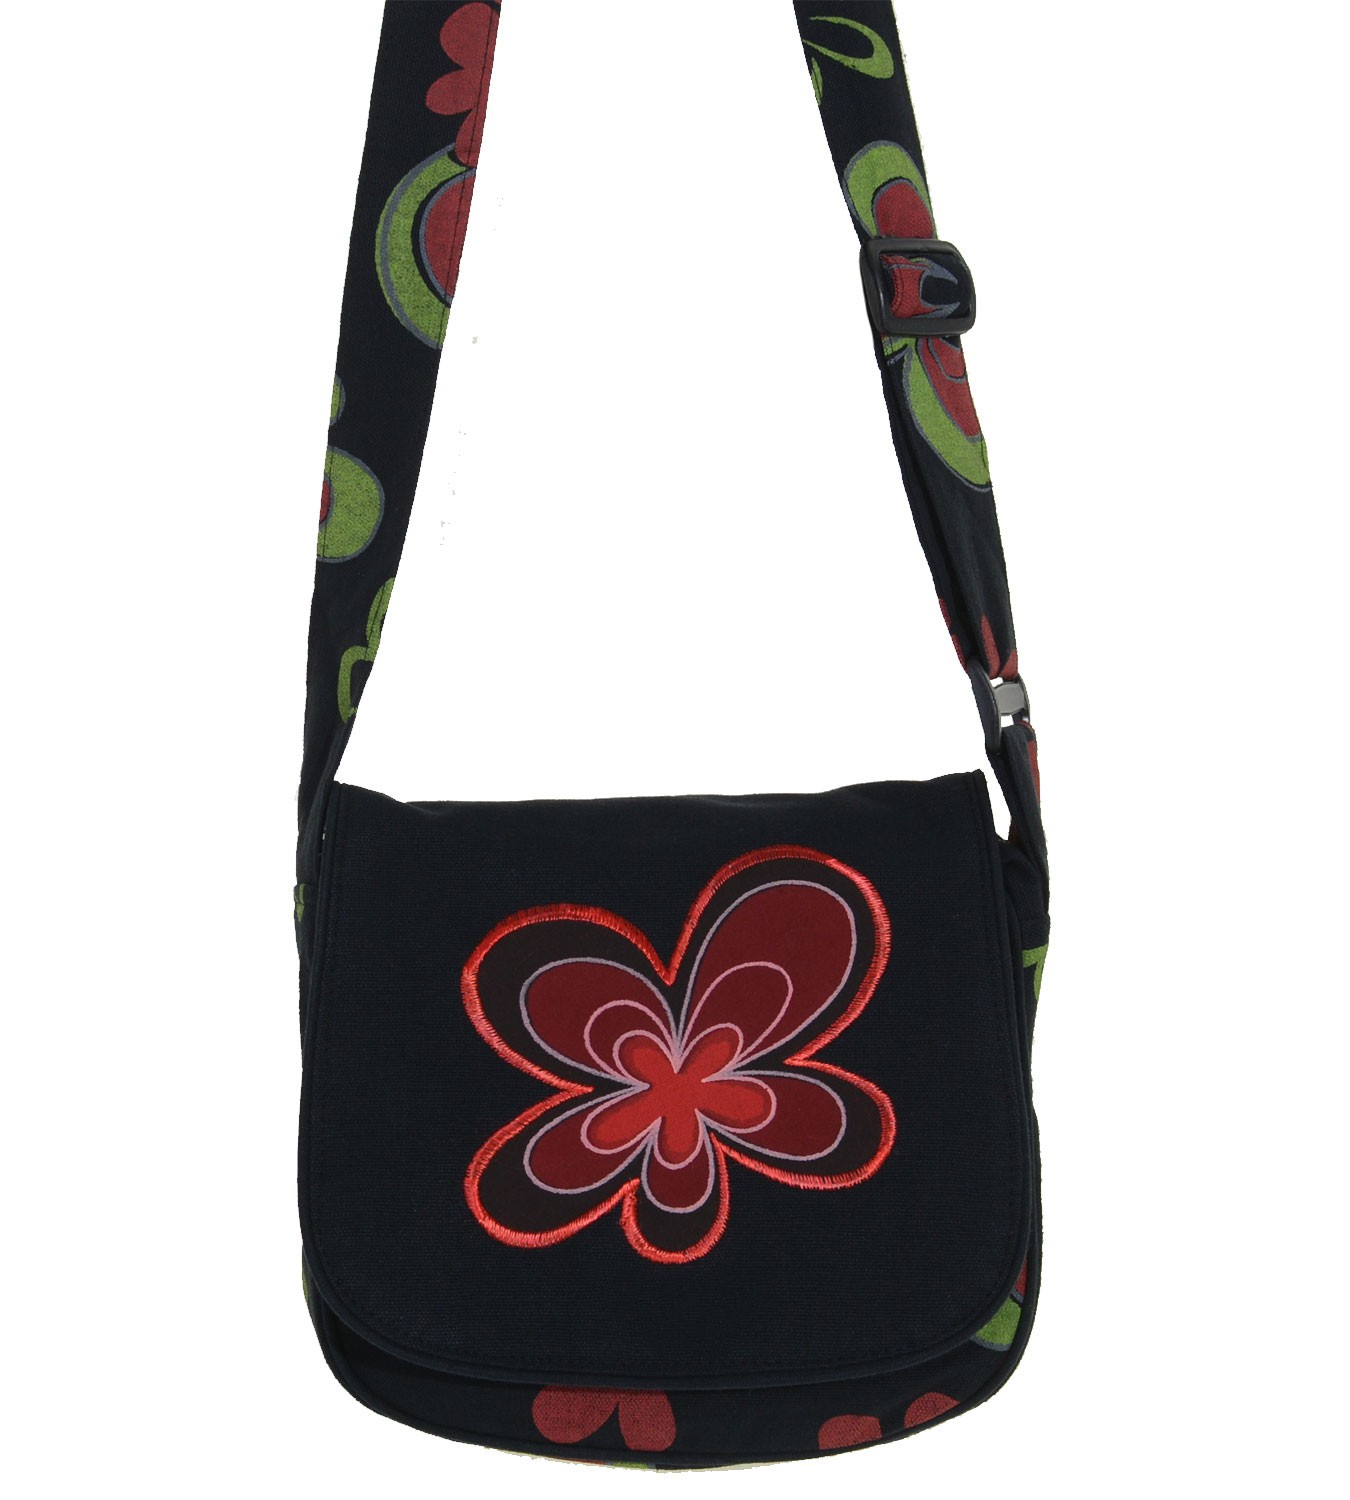 Alternative Damenhandtasche mit Blumenmuster Hippie Goa Psy